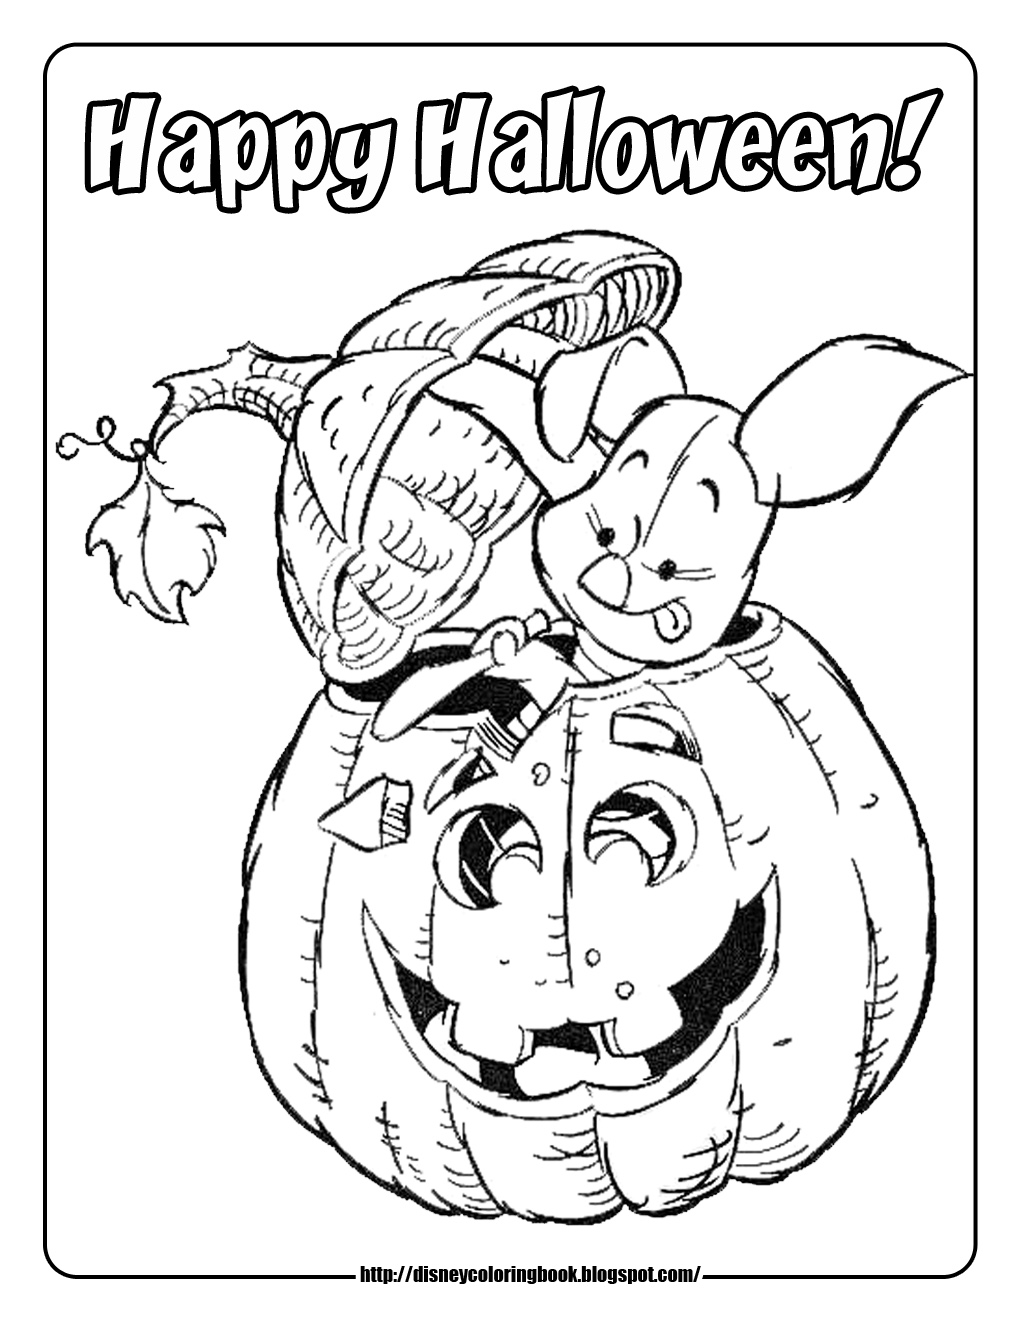 printable coloring pages halloween | Disney Coloring Pages and Sheets for Kids